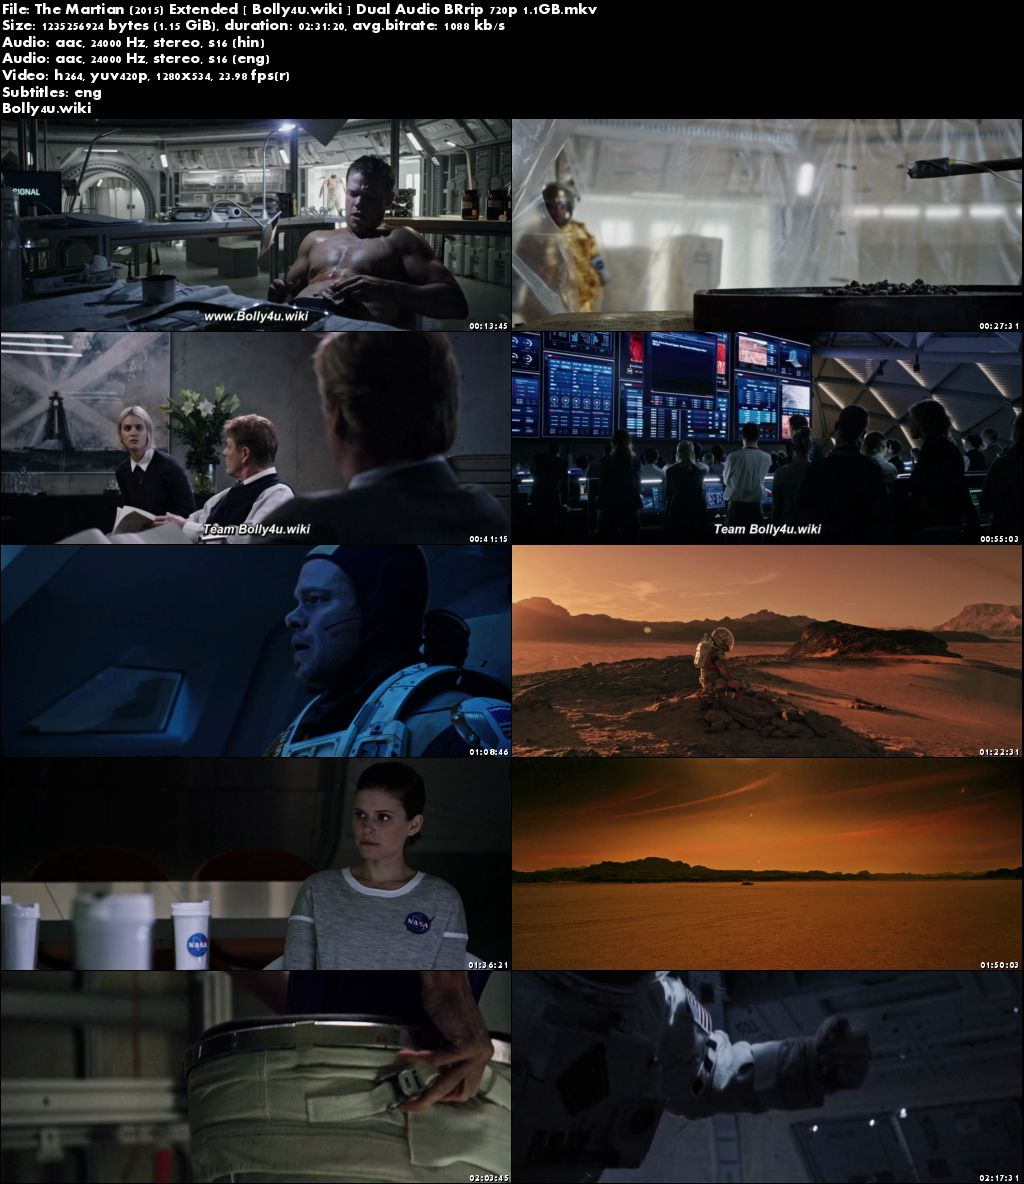 The Martian 2015 BRRip 450Mb Extended Hindi Dual Audio 480p Download